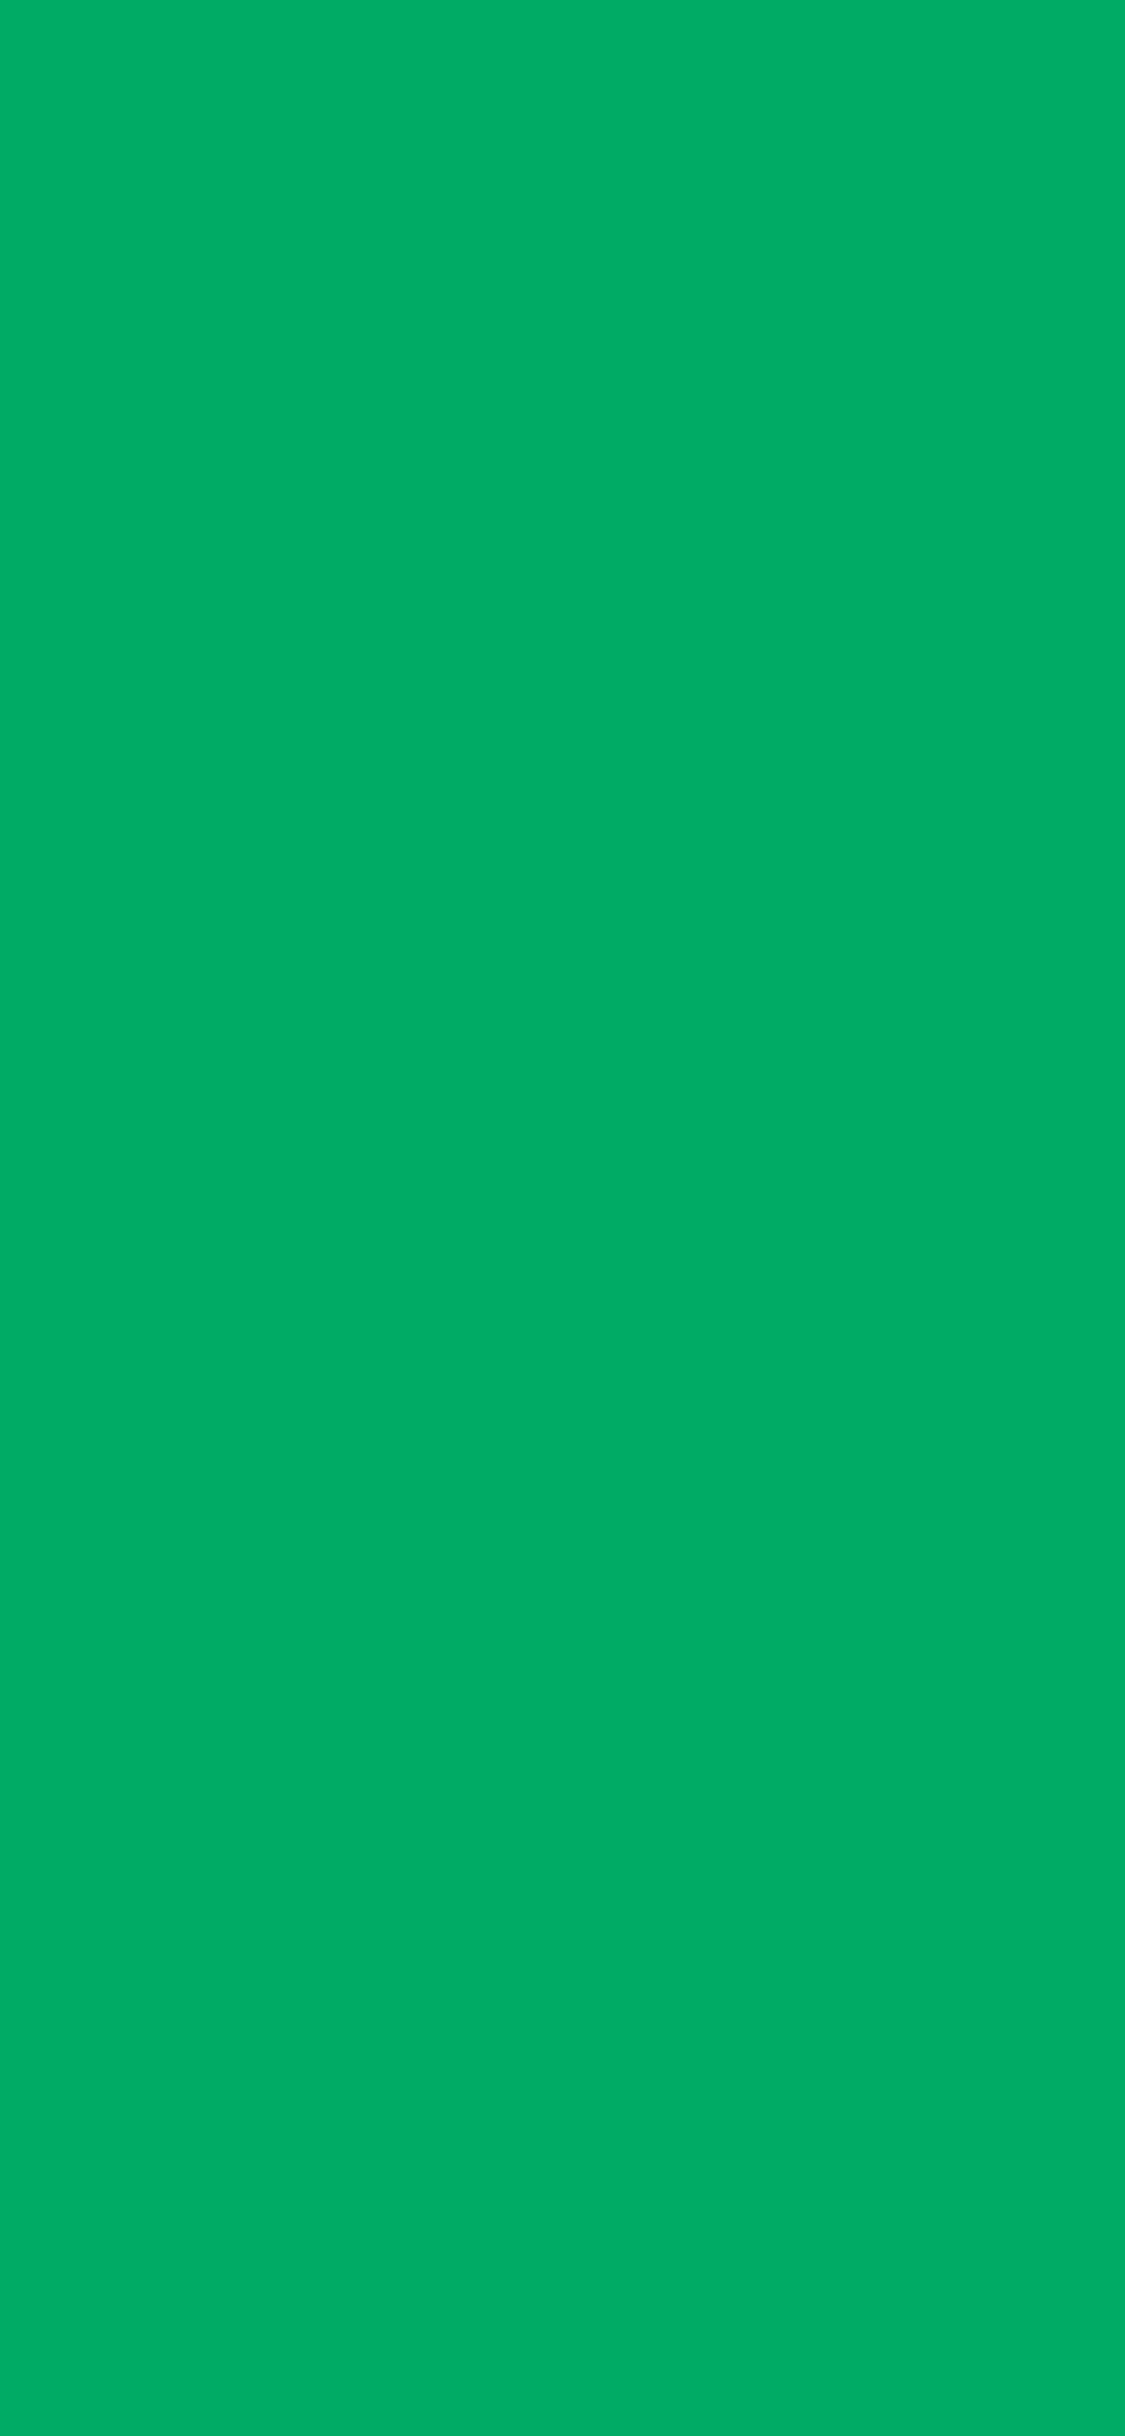 1125x2436 GO Green Solid Color Background